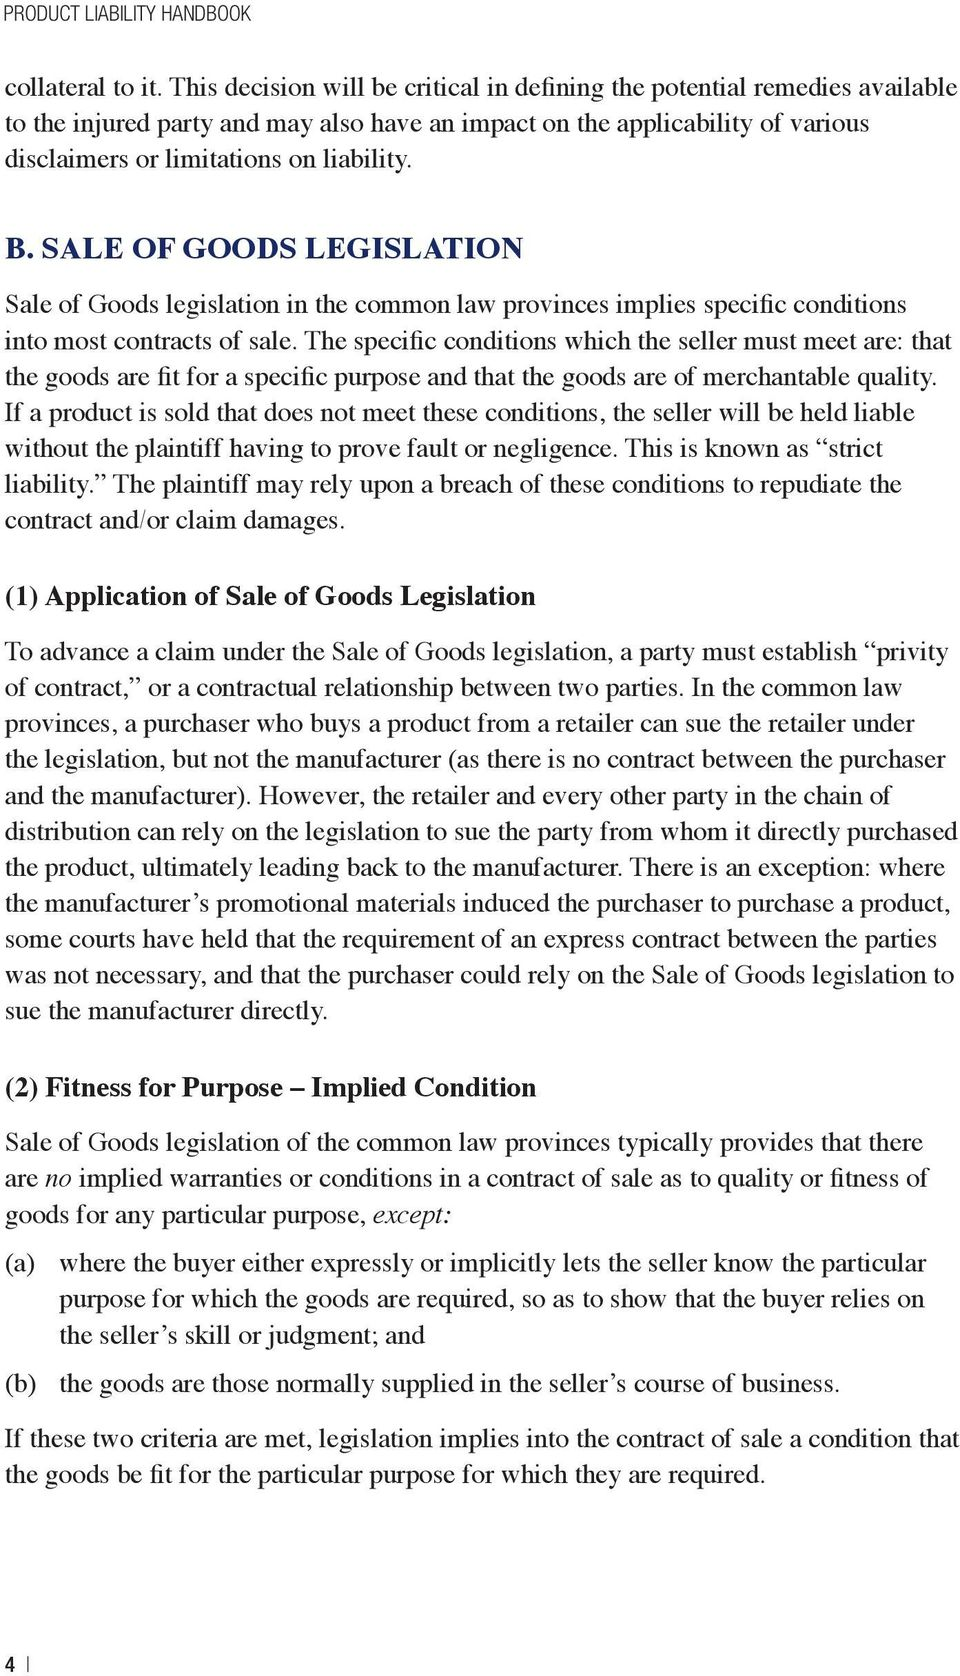 SALE OF GOODS LEGISLATION Sale of Goods legislation in the common law provinces implies specific conditions into most contracts of sale.